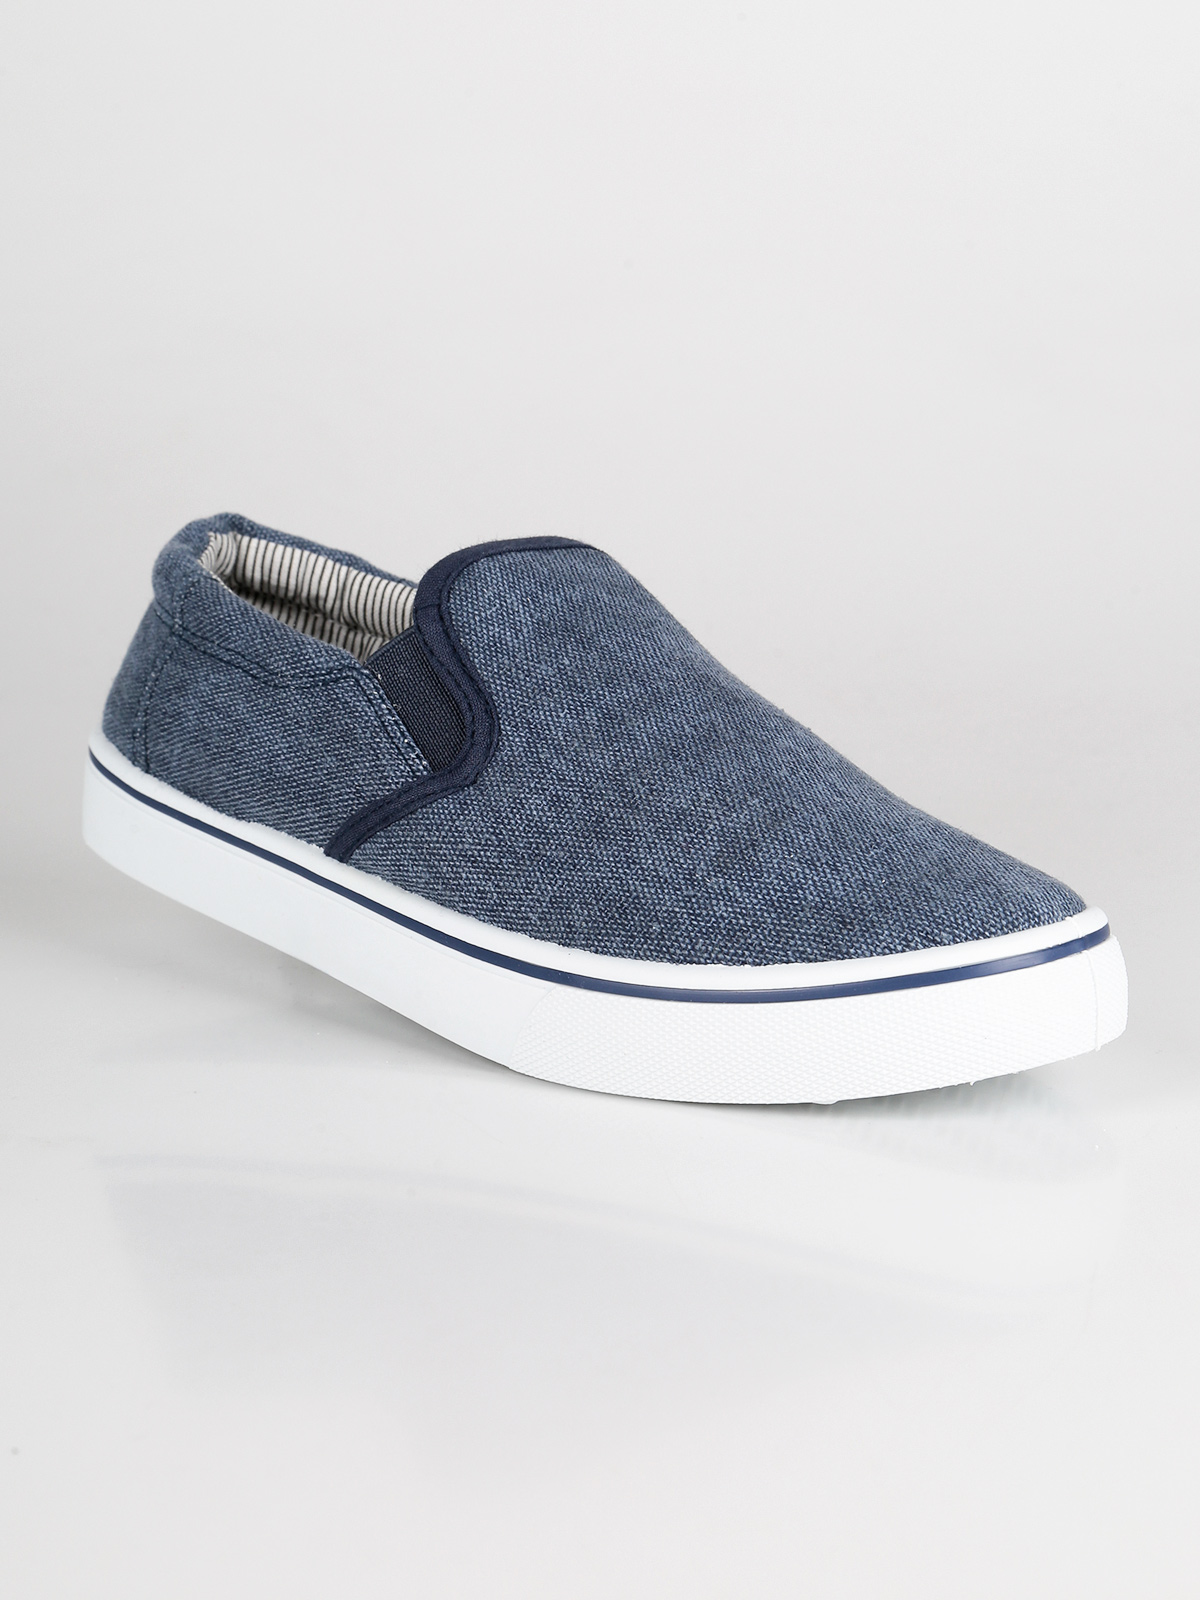 Slip on sneakers effect jeans|  - title=